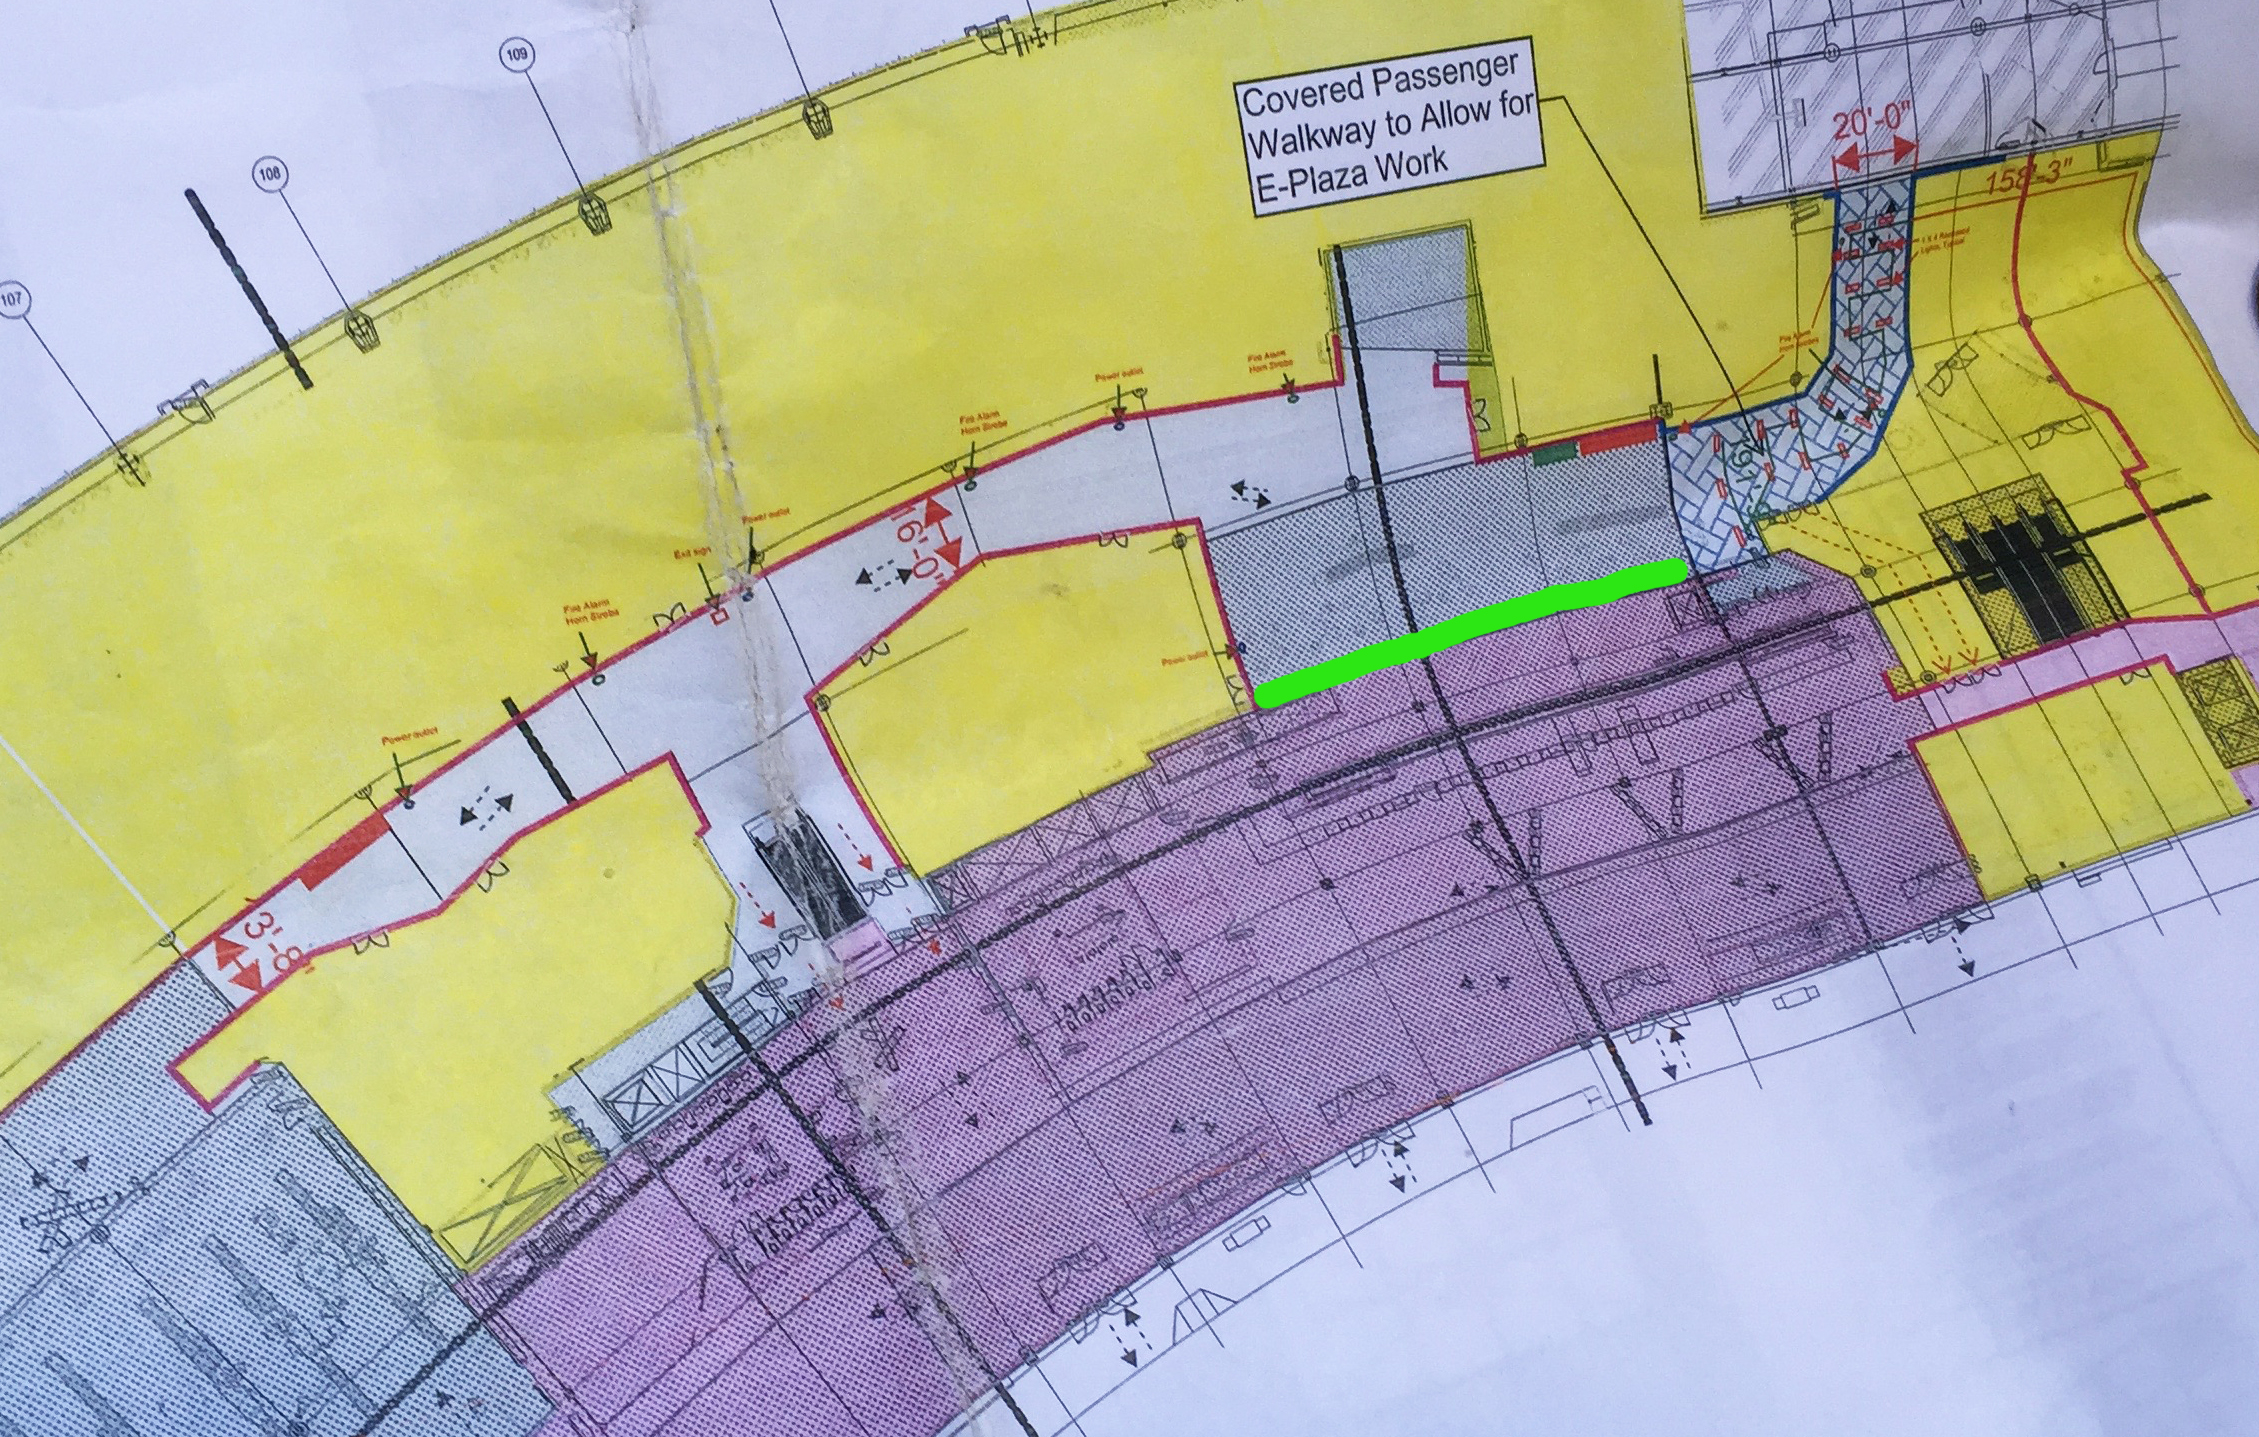 Construction plan for the current phase of Terminal 3. The brightgreen line indicates my mural site.